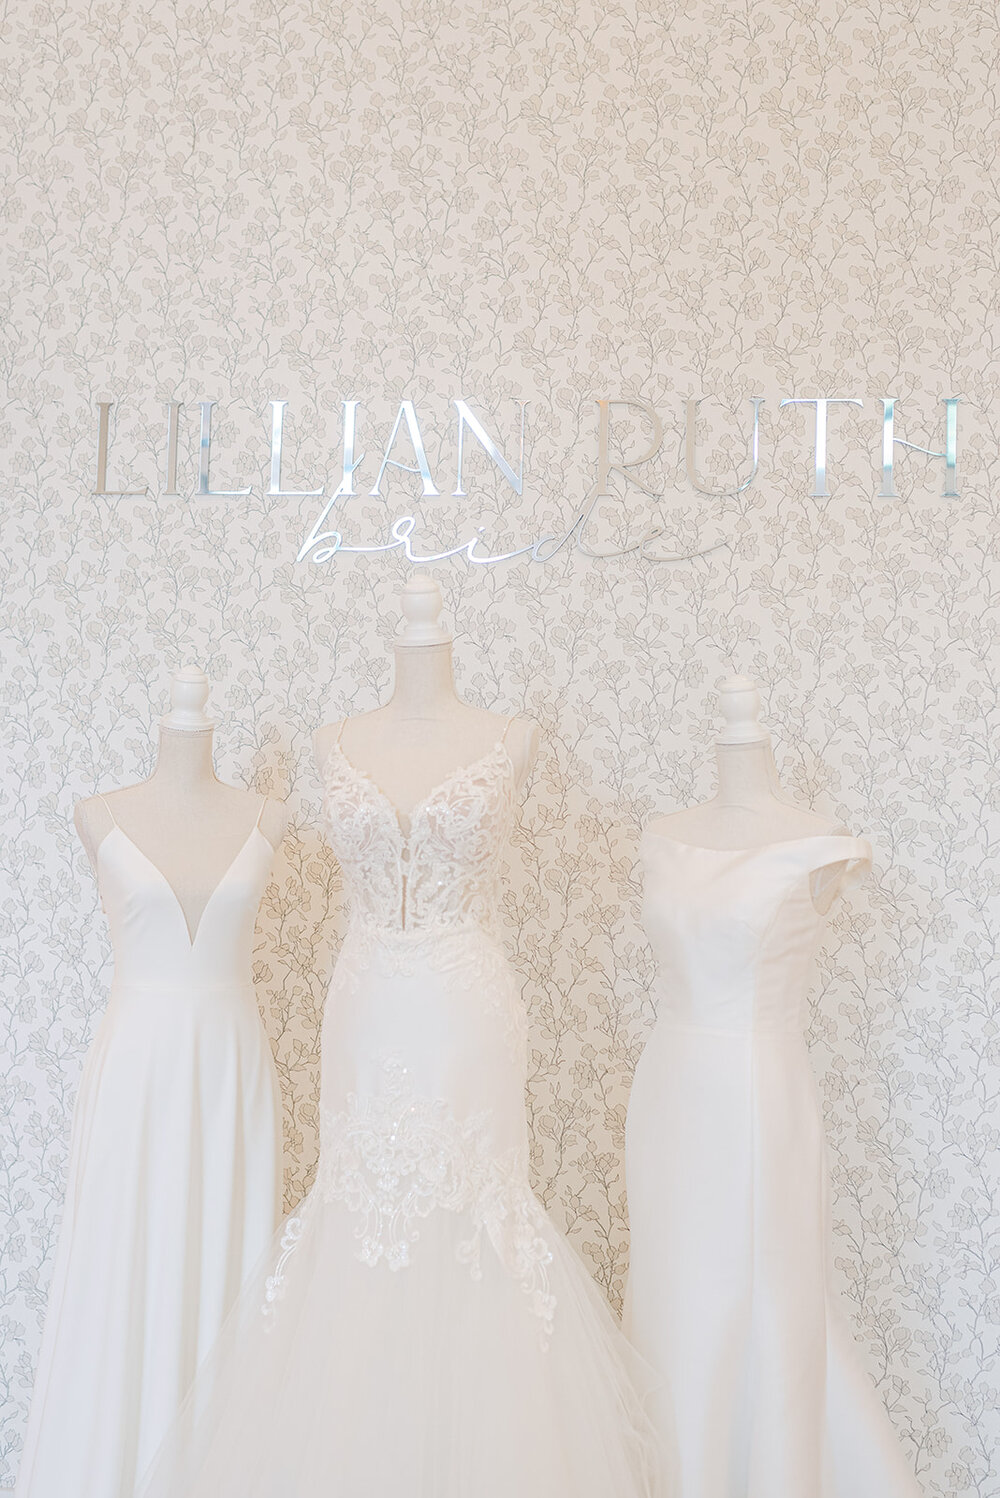 Tennessee Bridal Shop   Lillian Ruth Bride   By Appointment Only